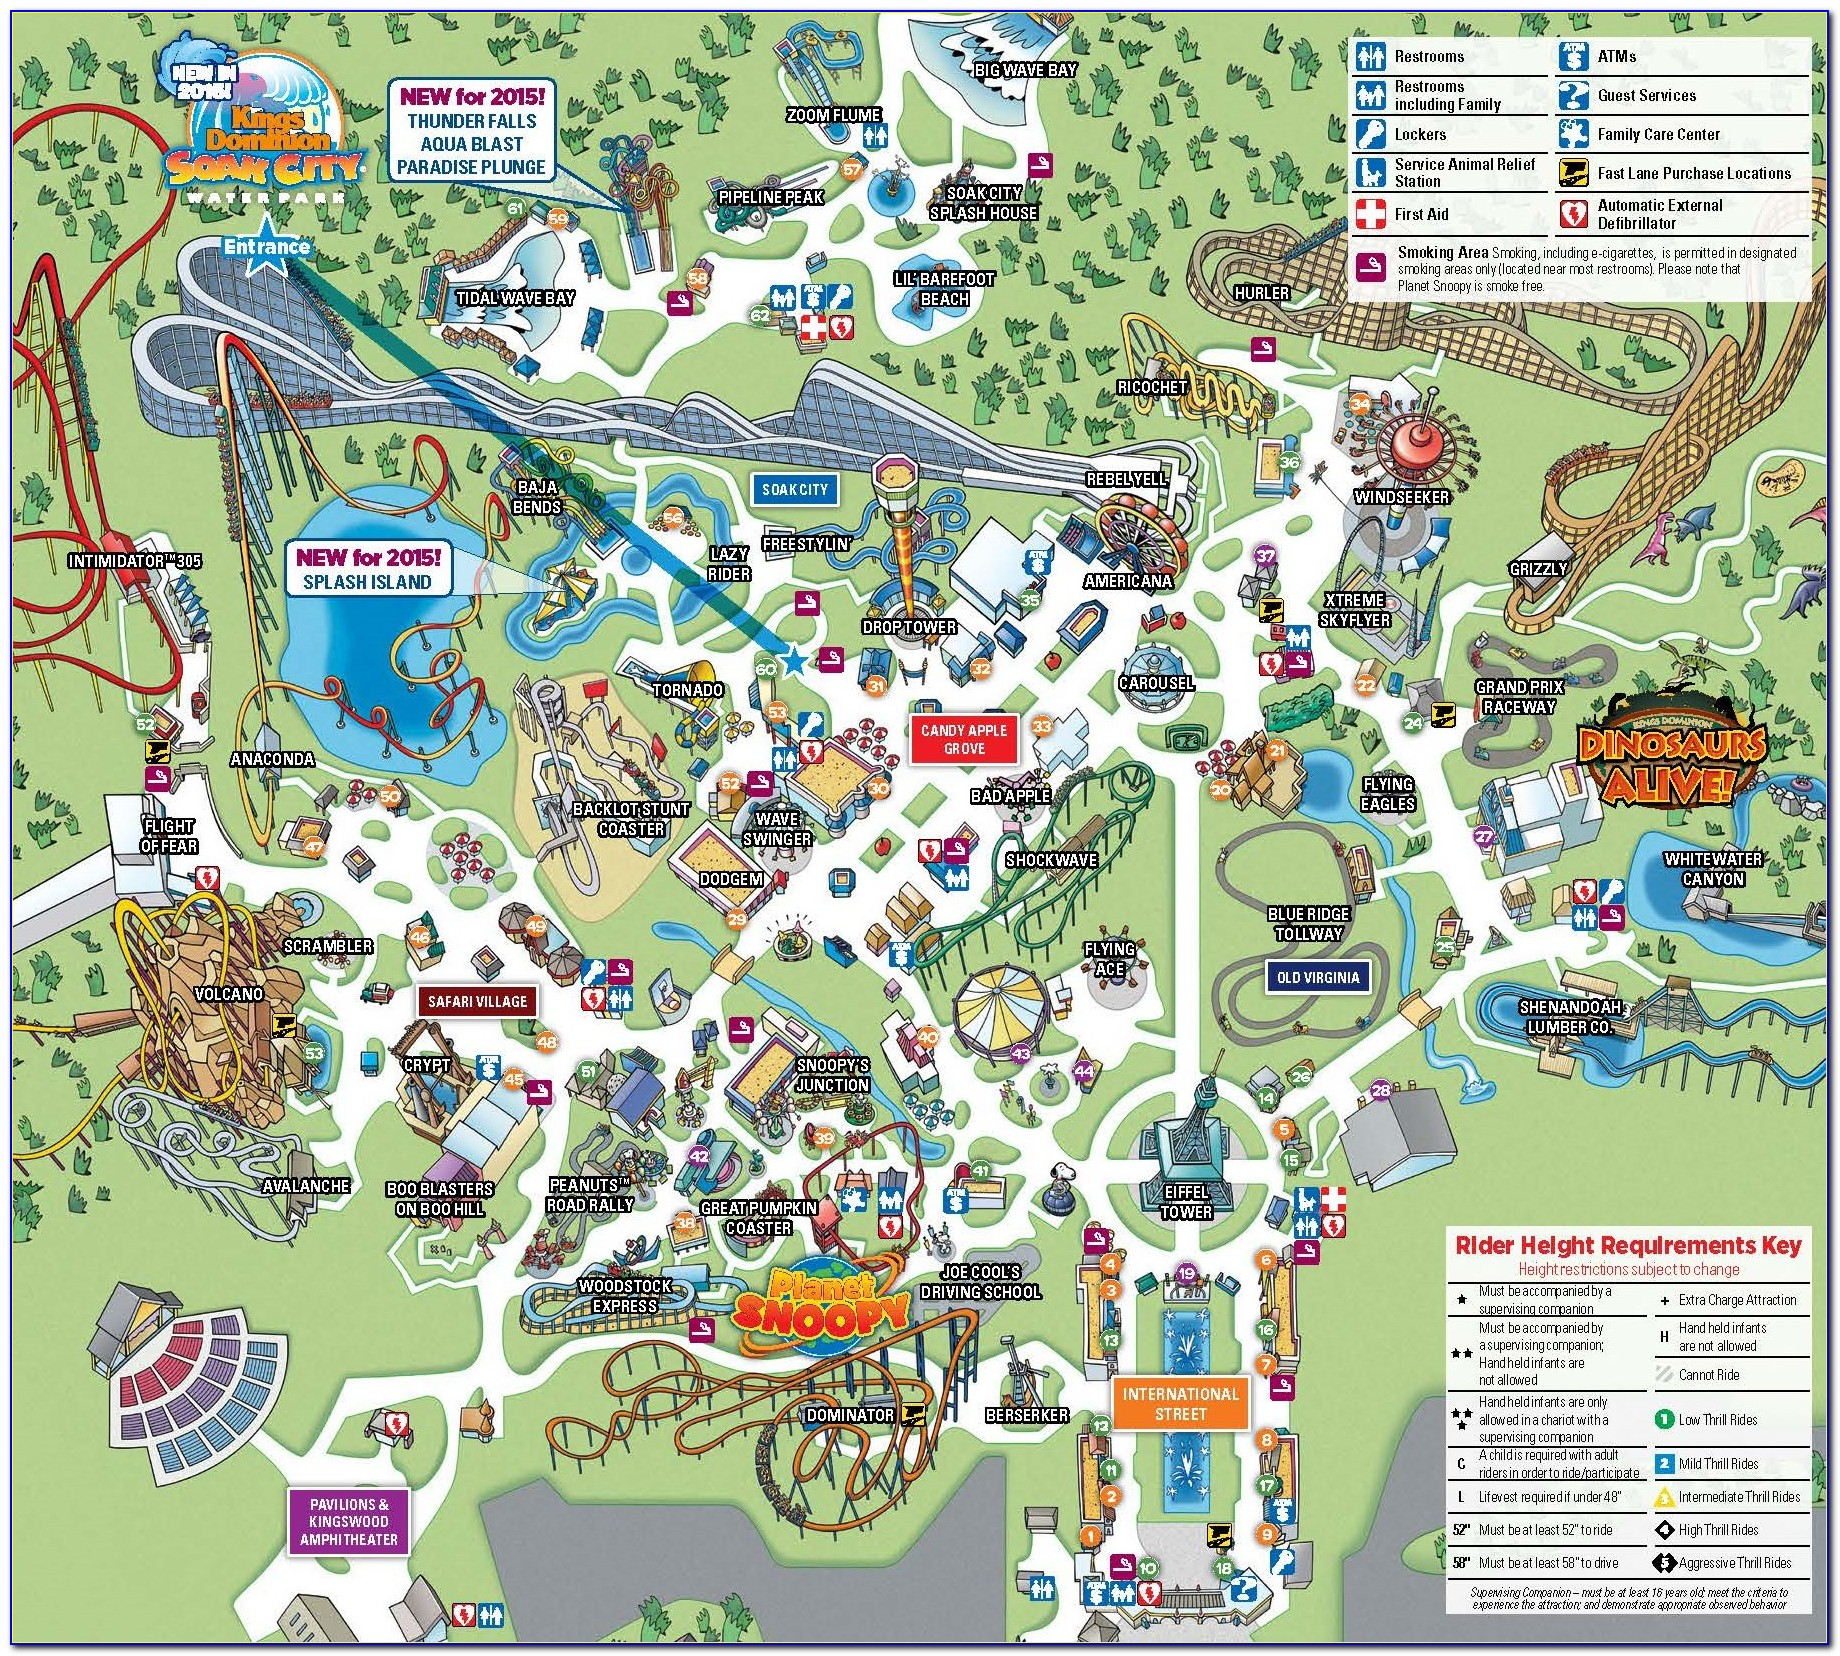 Kings Dominion Map 2015